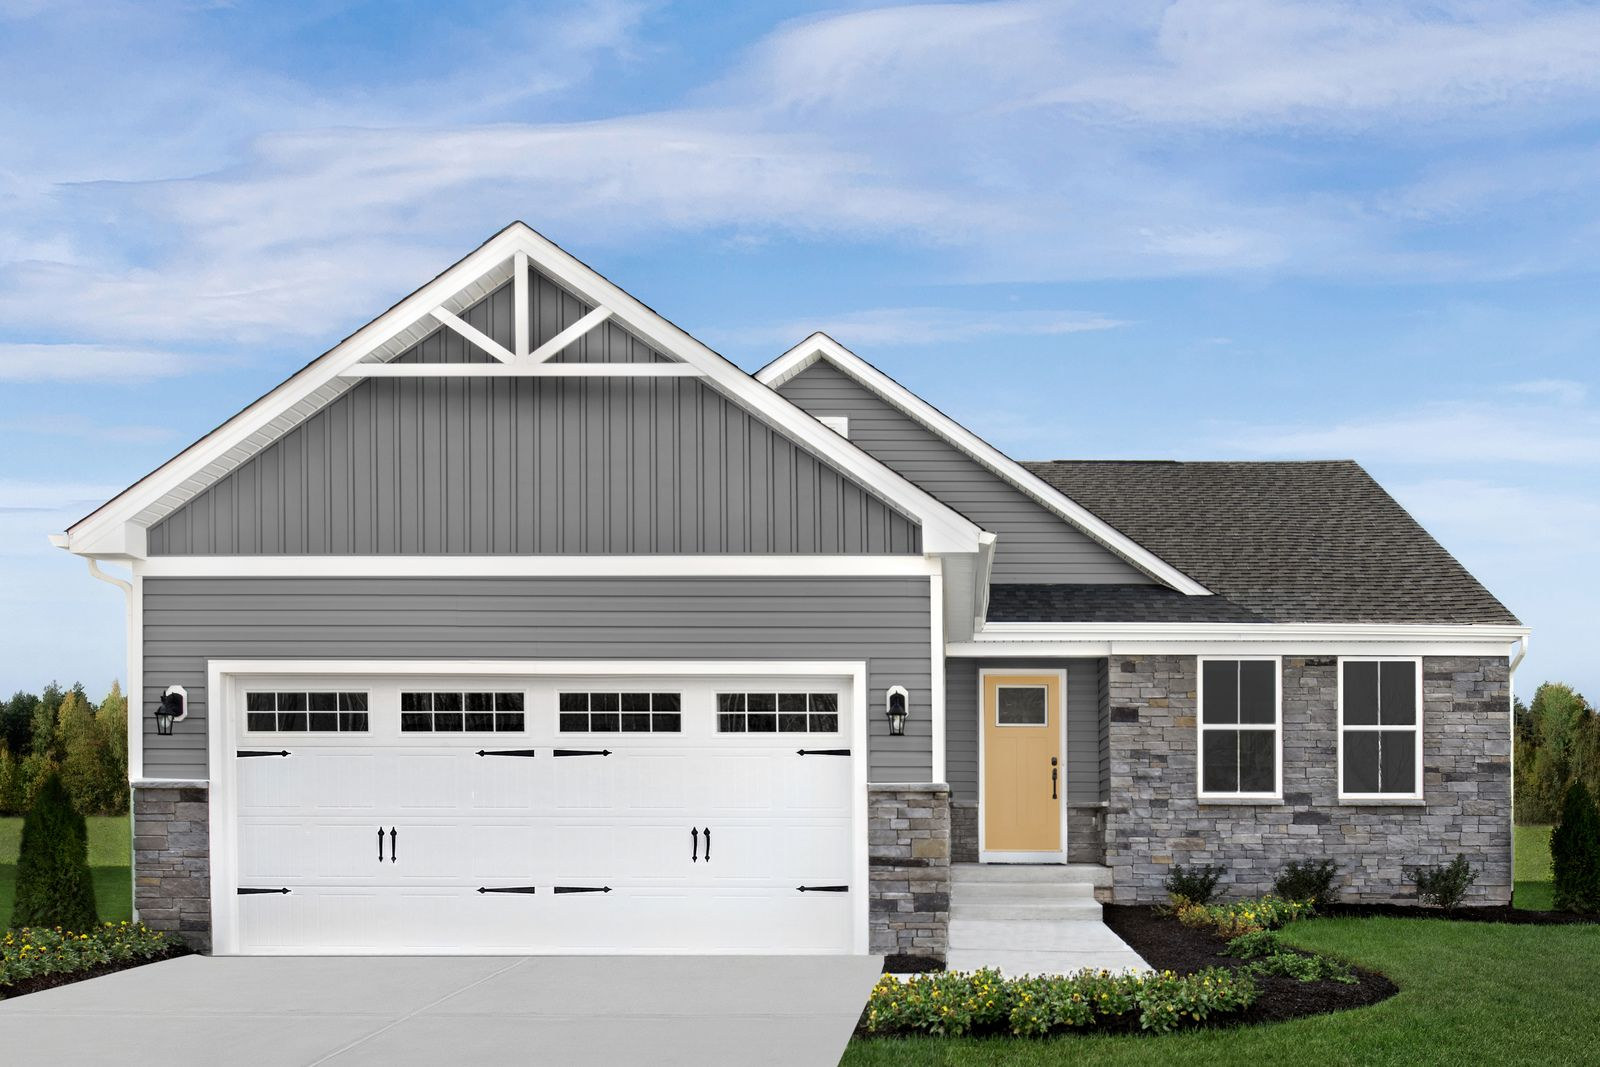 Gristmill Villas: New Detached Ranch Homes in Westfield:Westfield's best value low-maintenance ranch homes, w tons of included features. Located near the corner of SR 32 & US-31, minutes from the Monon Trail. From upper $200s.Click here to learn more!